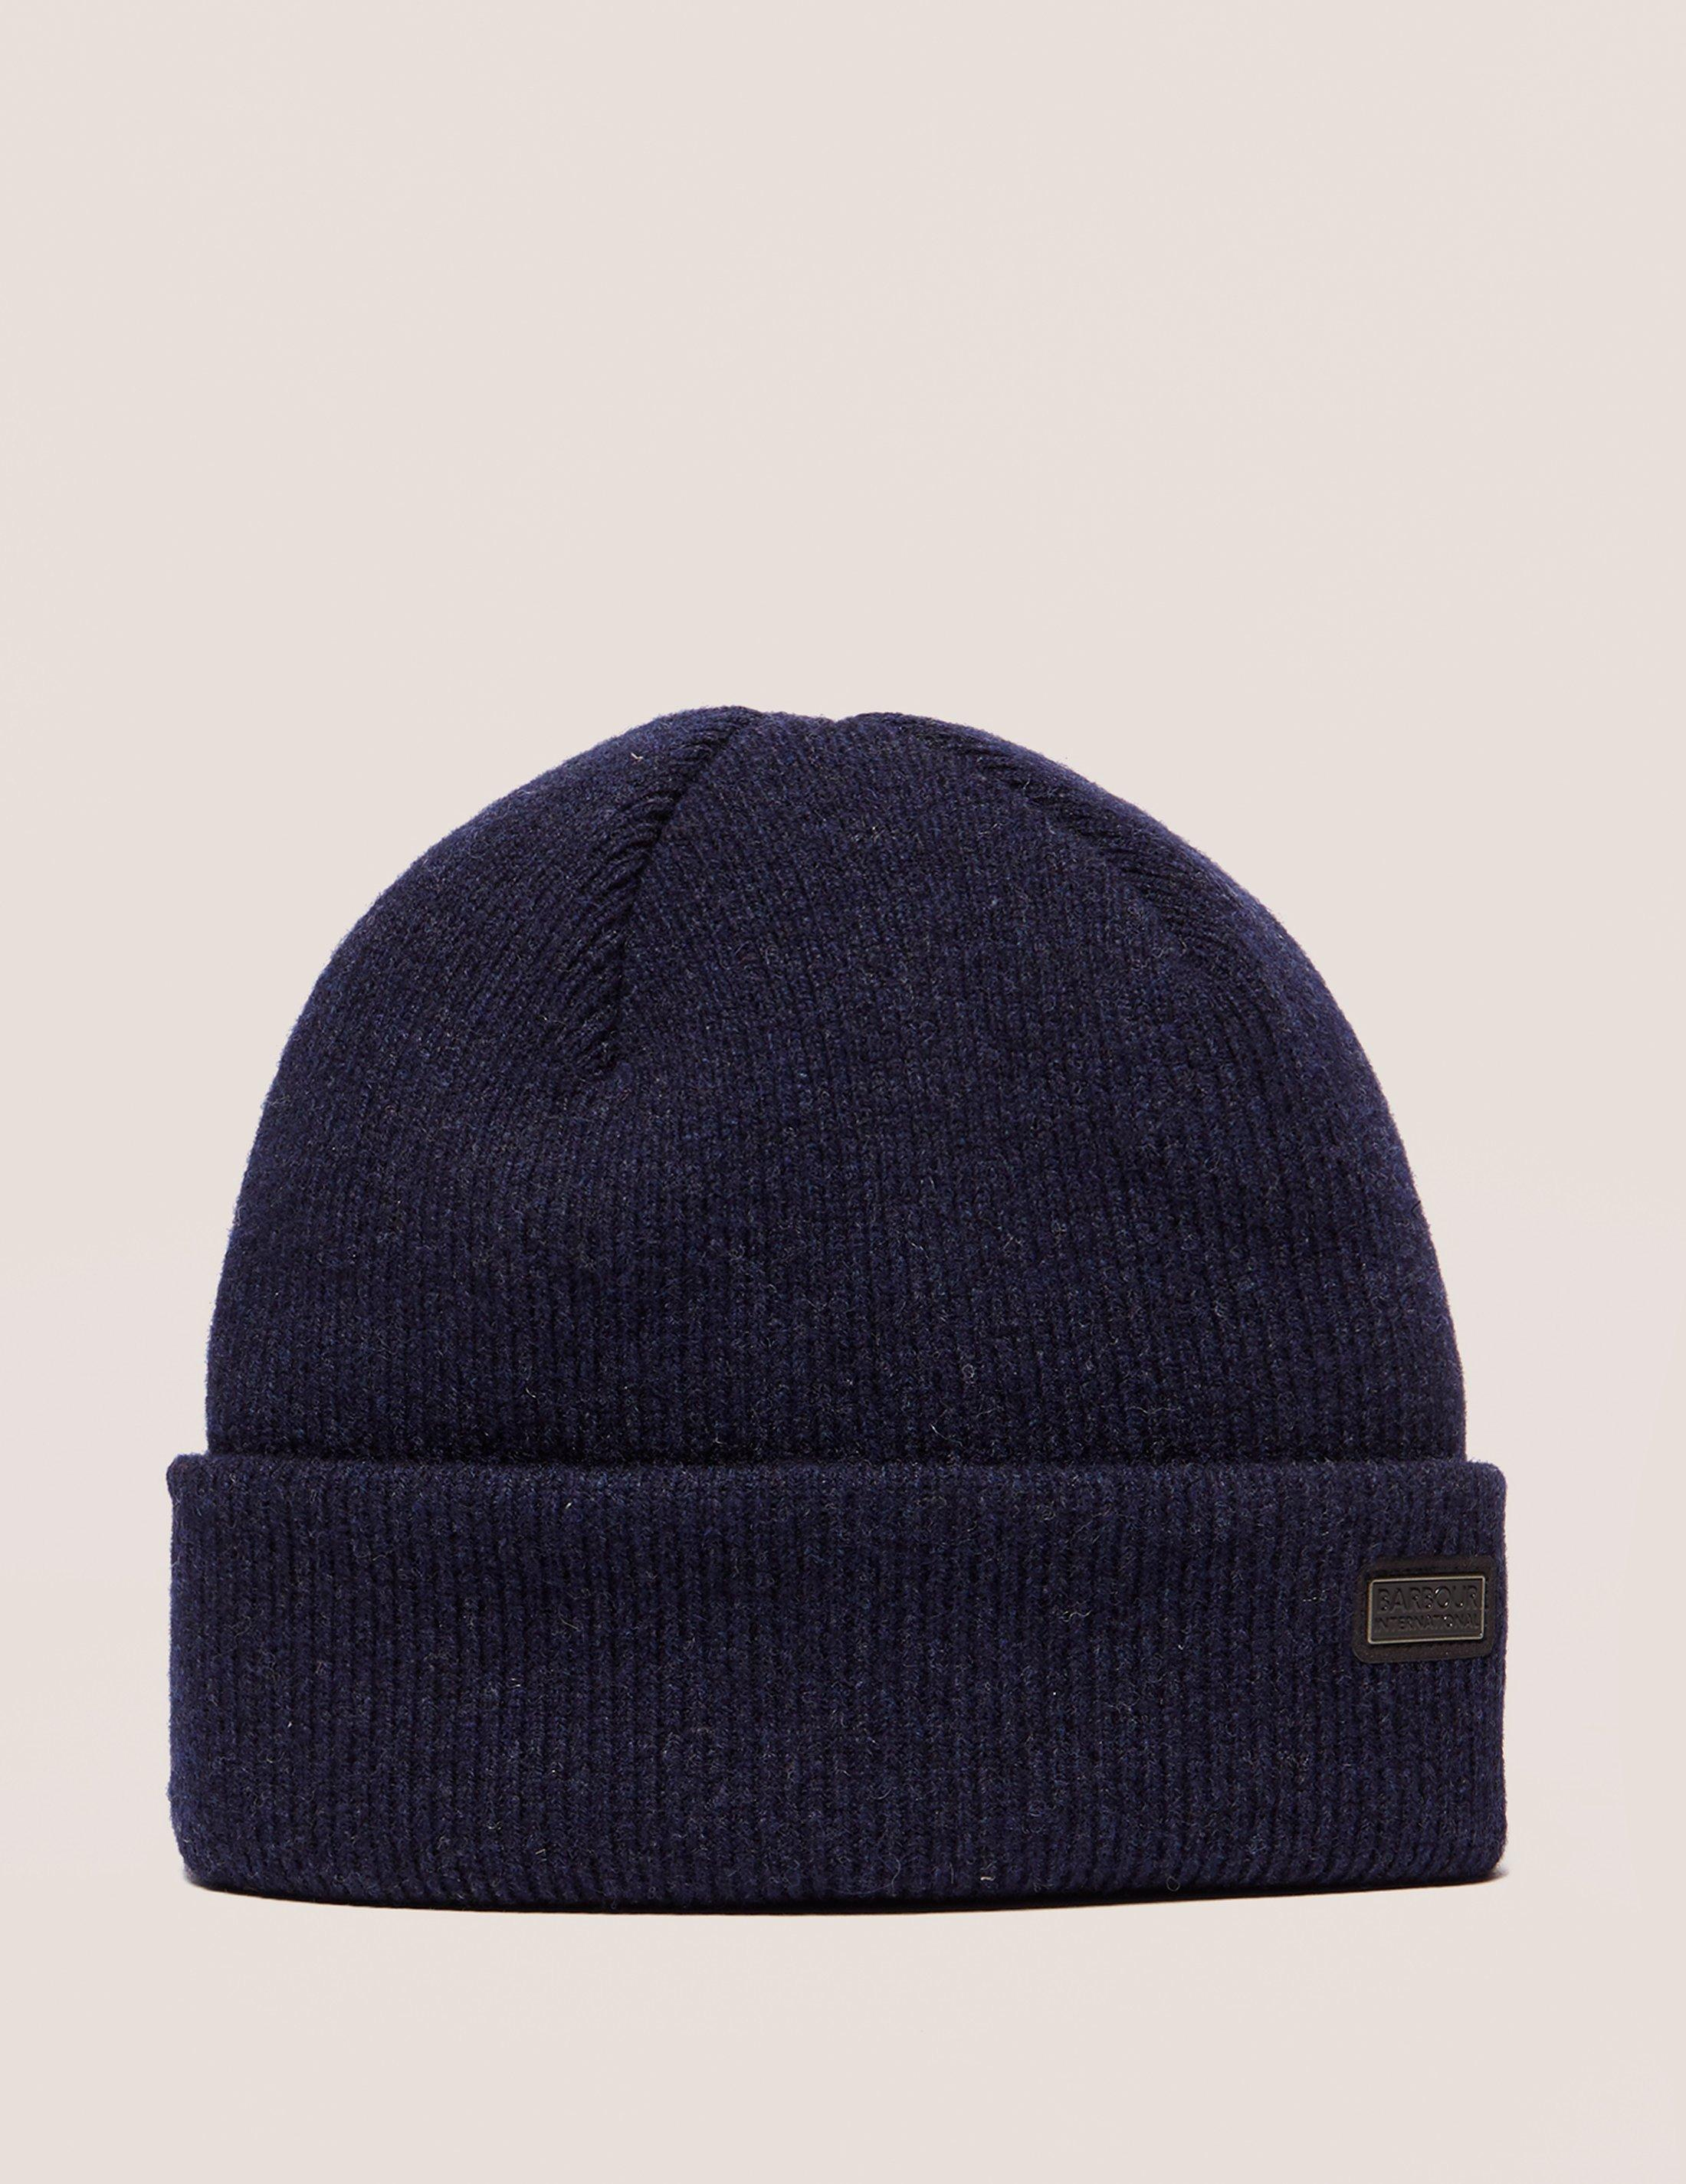 249efa5cc8c Barbour Mens International Watch Knitted Beanie Navy Blue in Blue ...